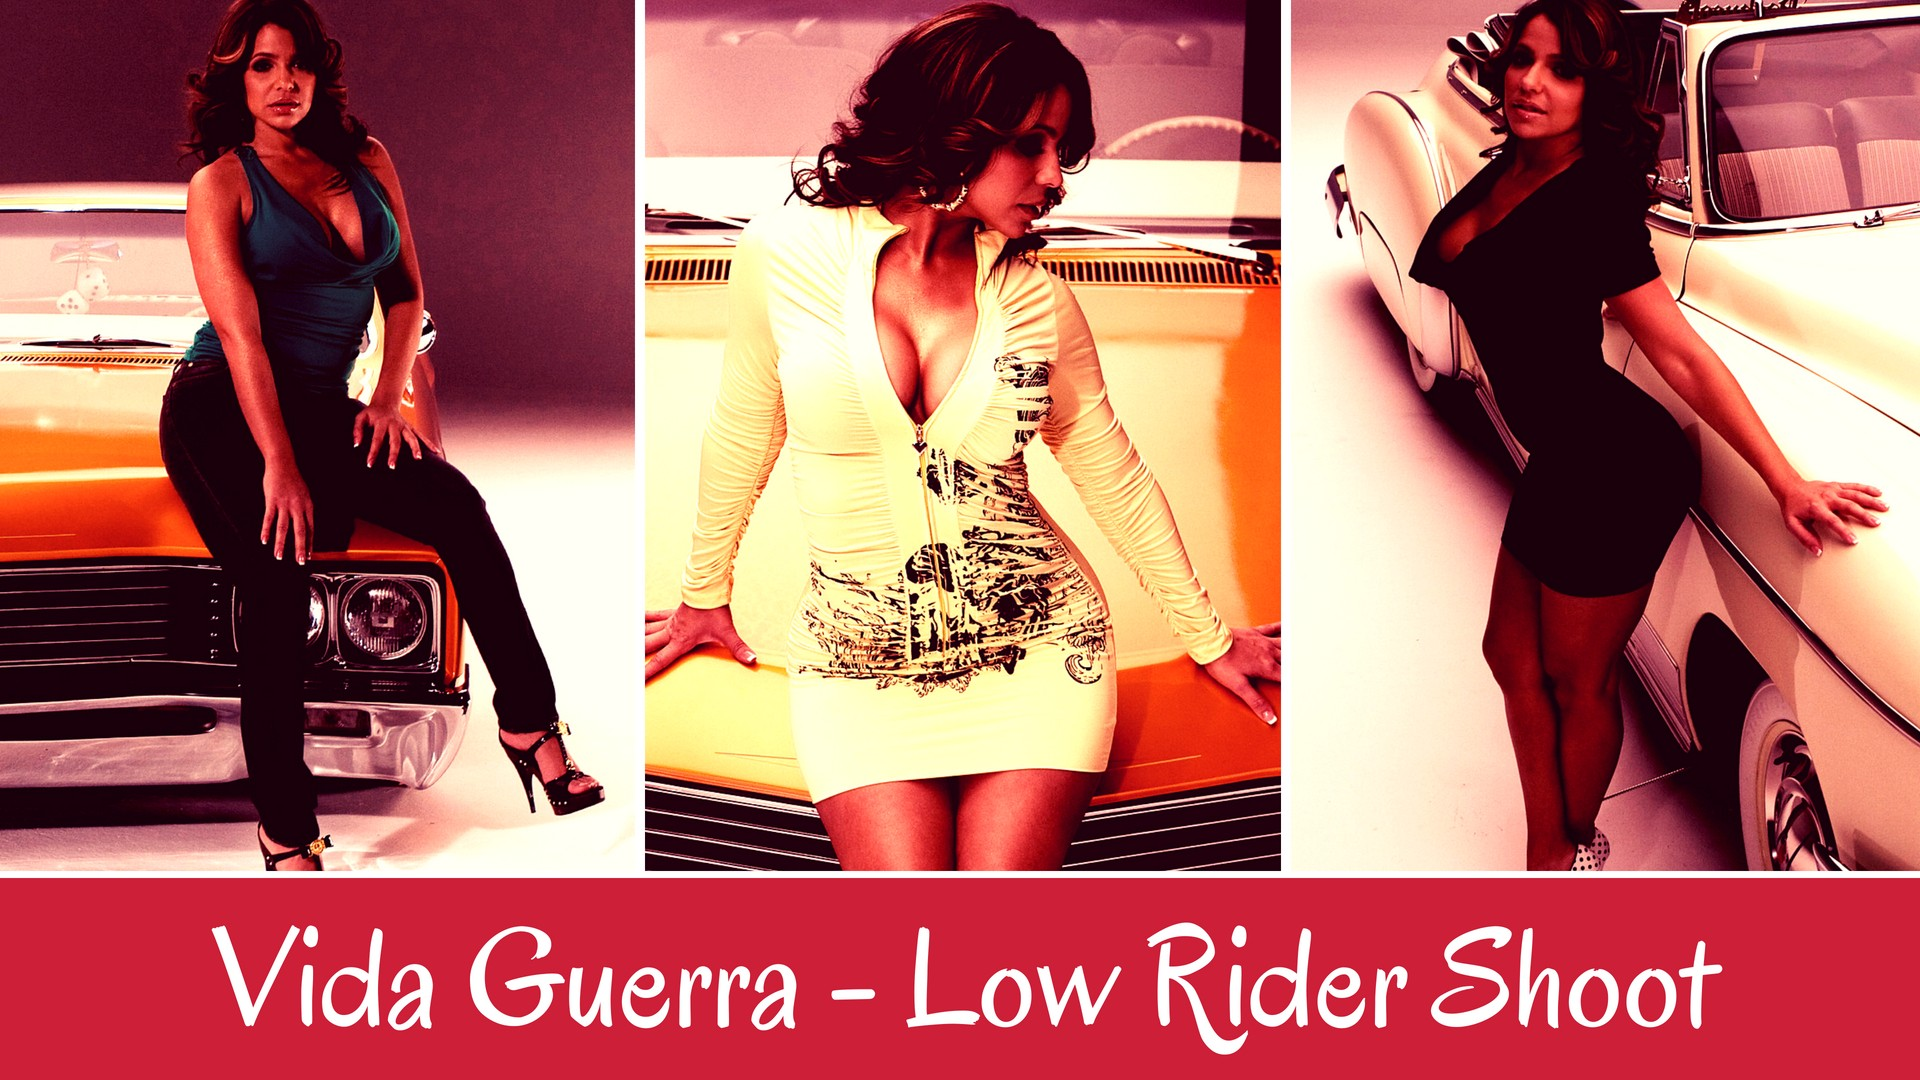 Vida Guerra - Low Rider Photo Shoot - Sexy Actress Pictures | Hot Actress Pictures - ActressSnaps.com